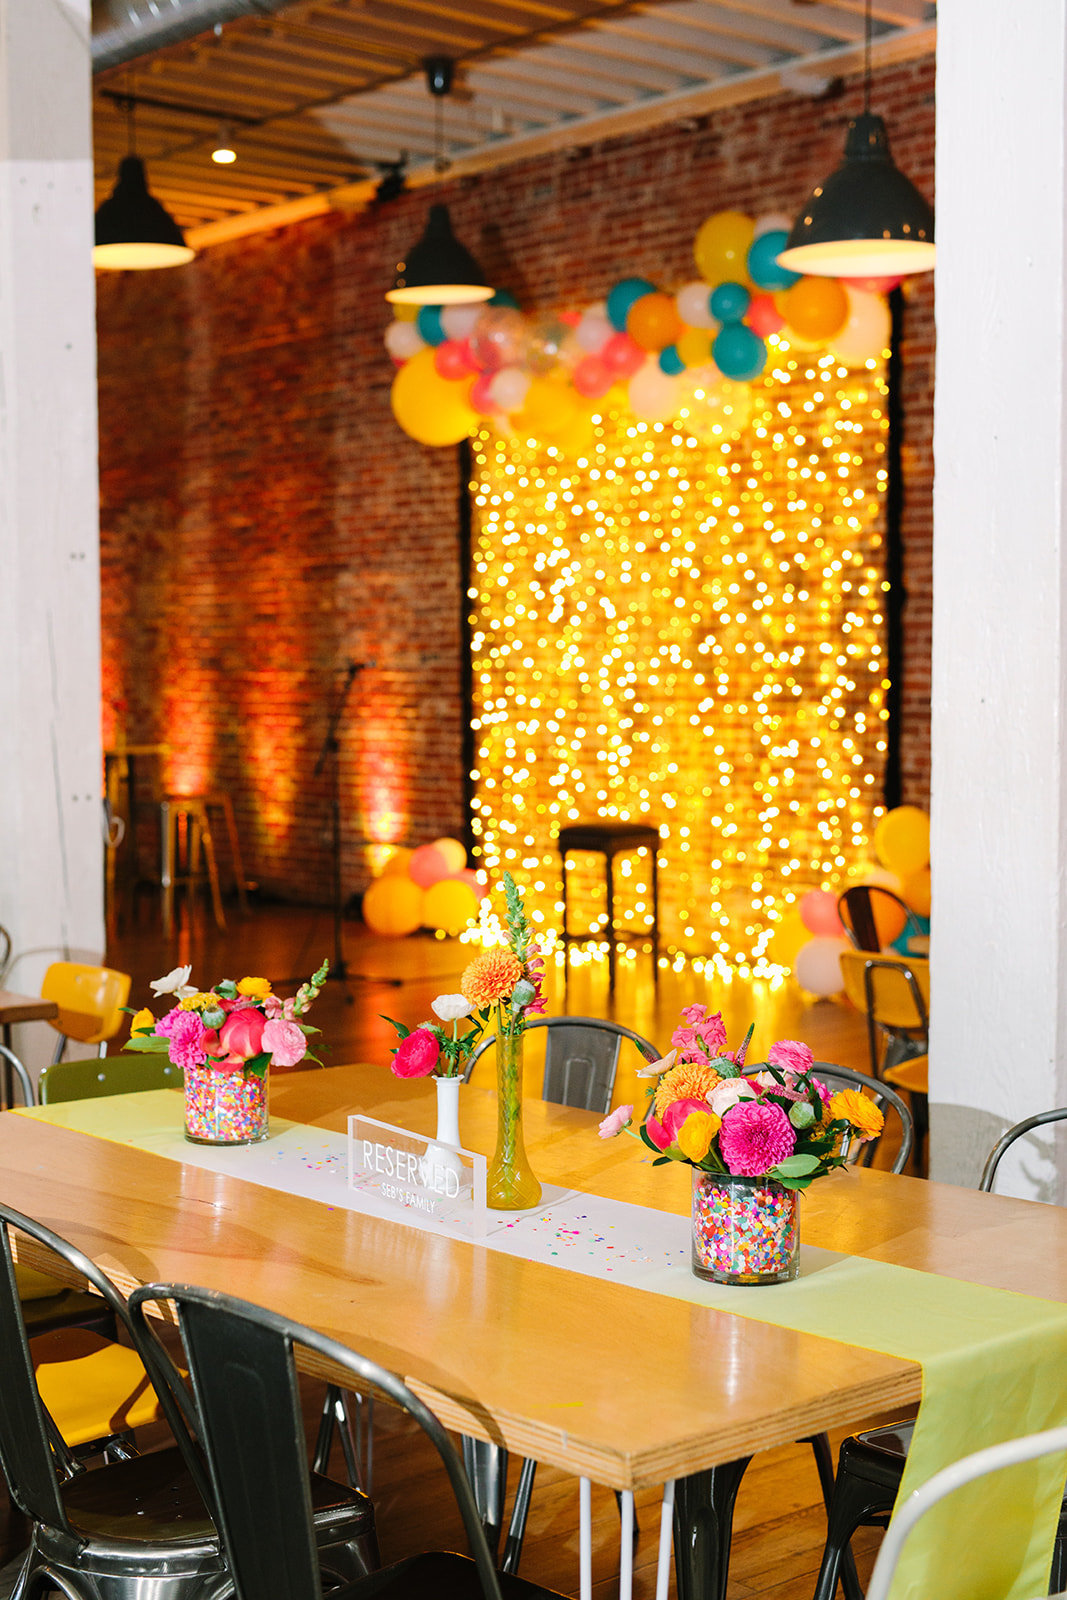 Wedding reception photobooth with string lights and balloons at The Unique Space LA in downtown Los Angeles